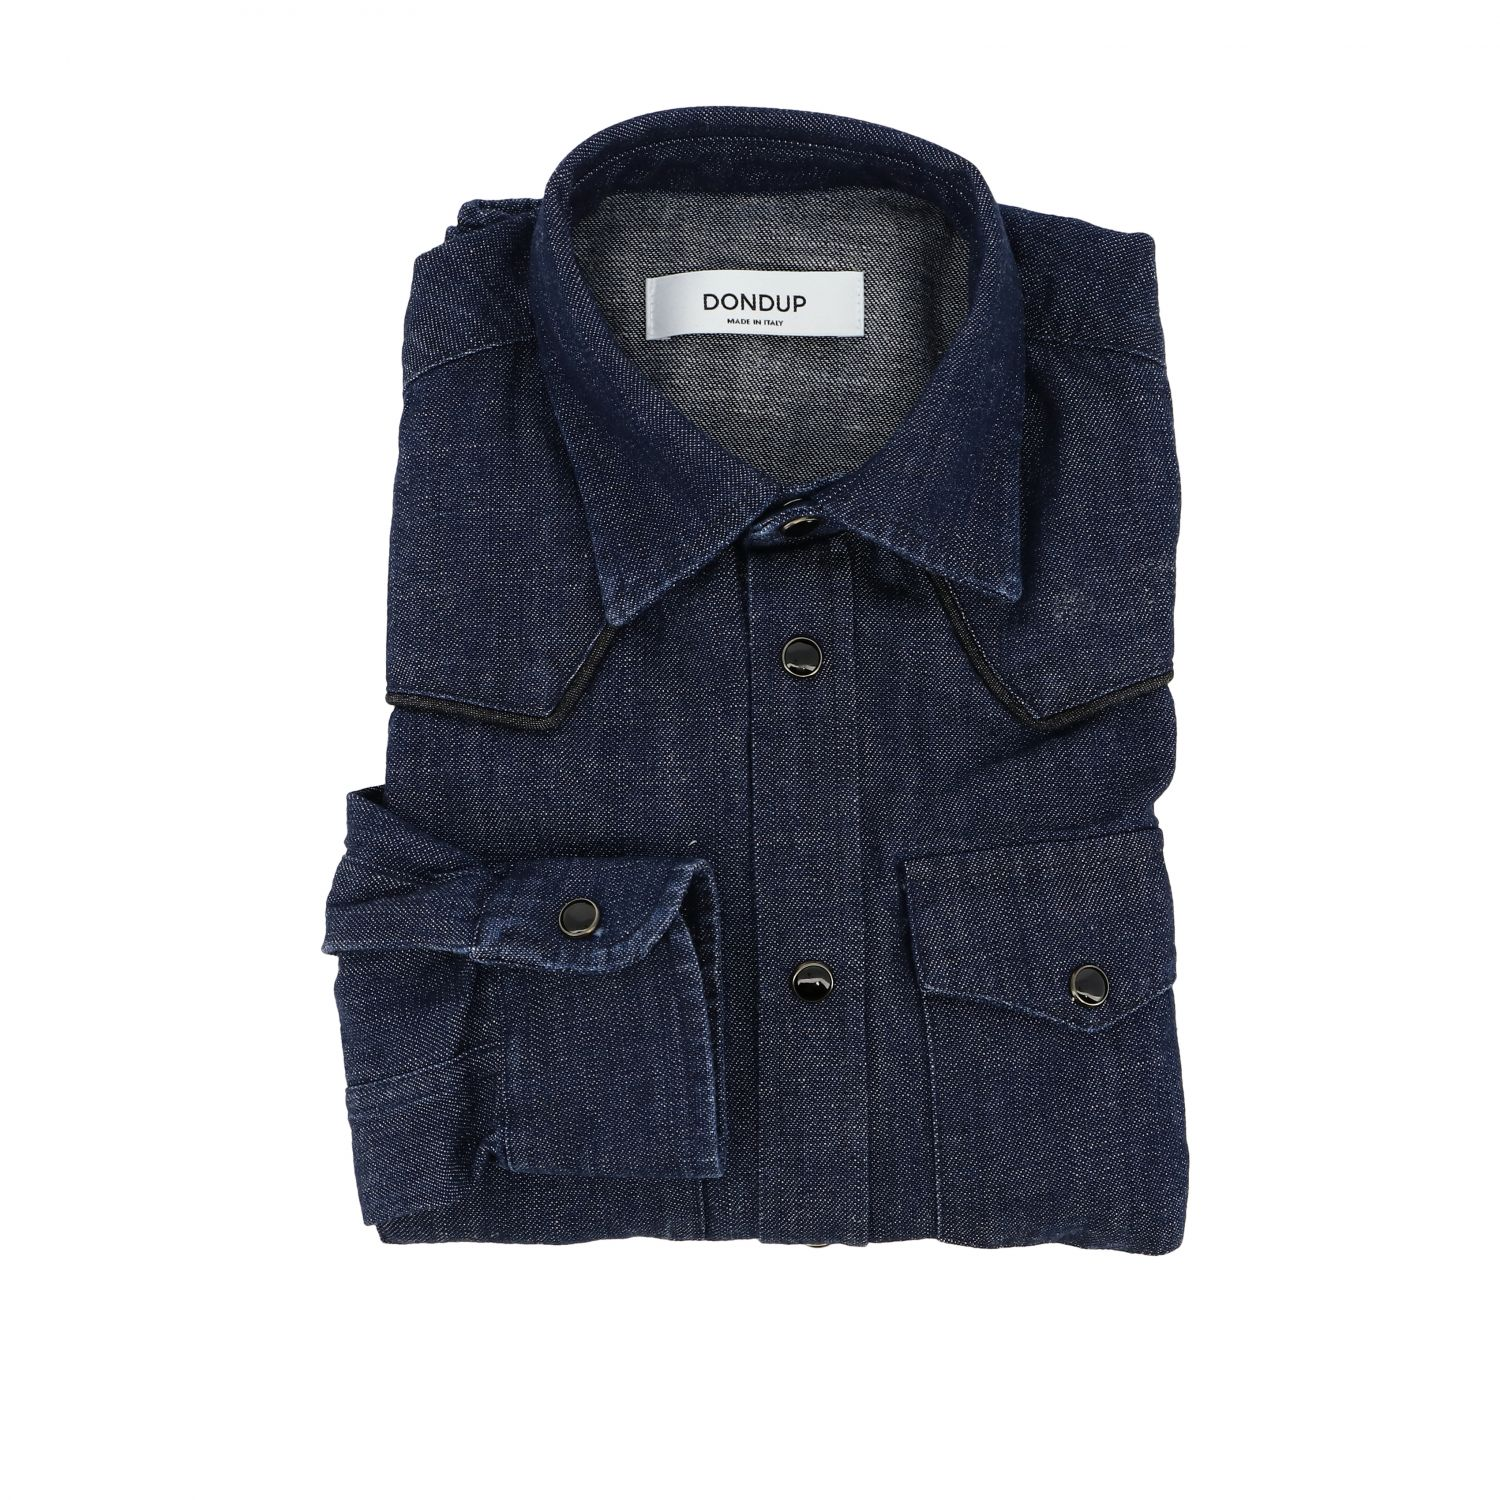 Shirt kids Dondup denim 1